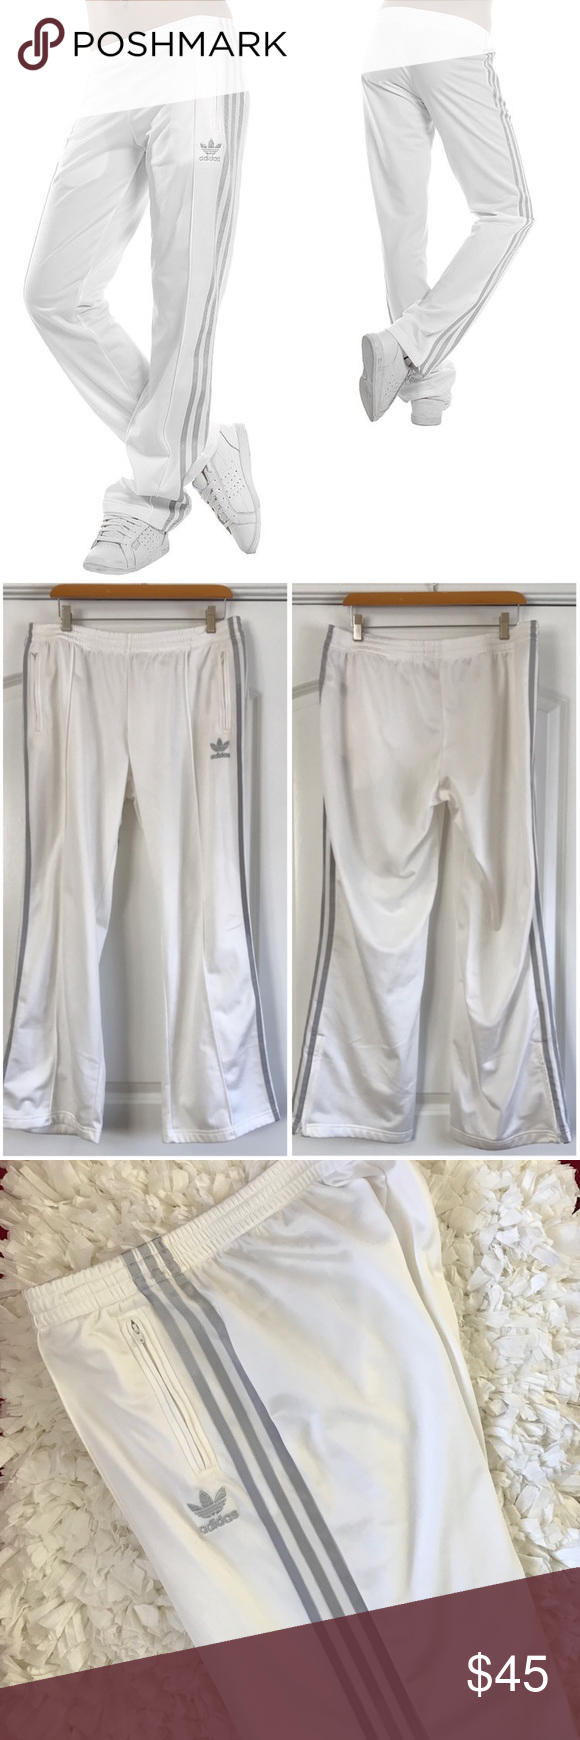 "Adidas Firebird Track Pant in White and Silver Adidas original firebird track pant in running white with metallic stripe. Zip pockets and fleece lining. In great condition. Smudge on the bottom of the cuff. Pic included. Can be cleaned off. Length 39"", inseam 31"", across waist 18"" Adidas Pants Track Pants & Joggers"